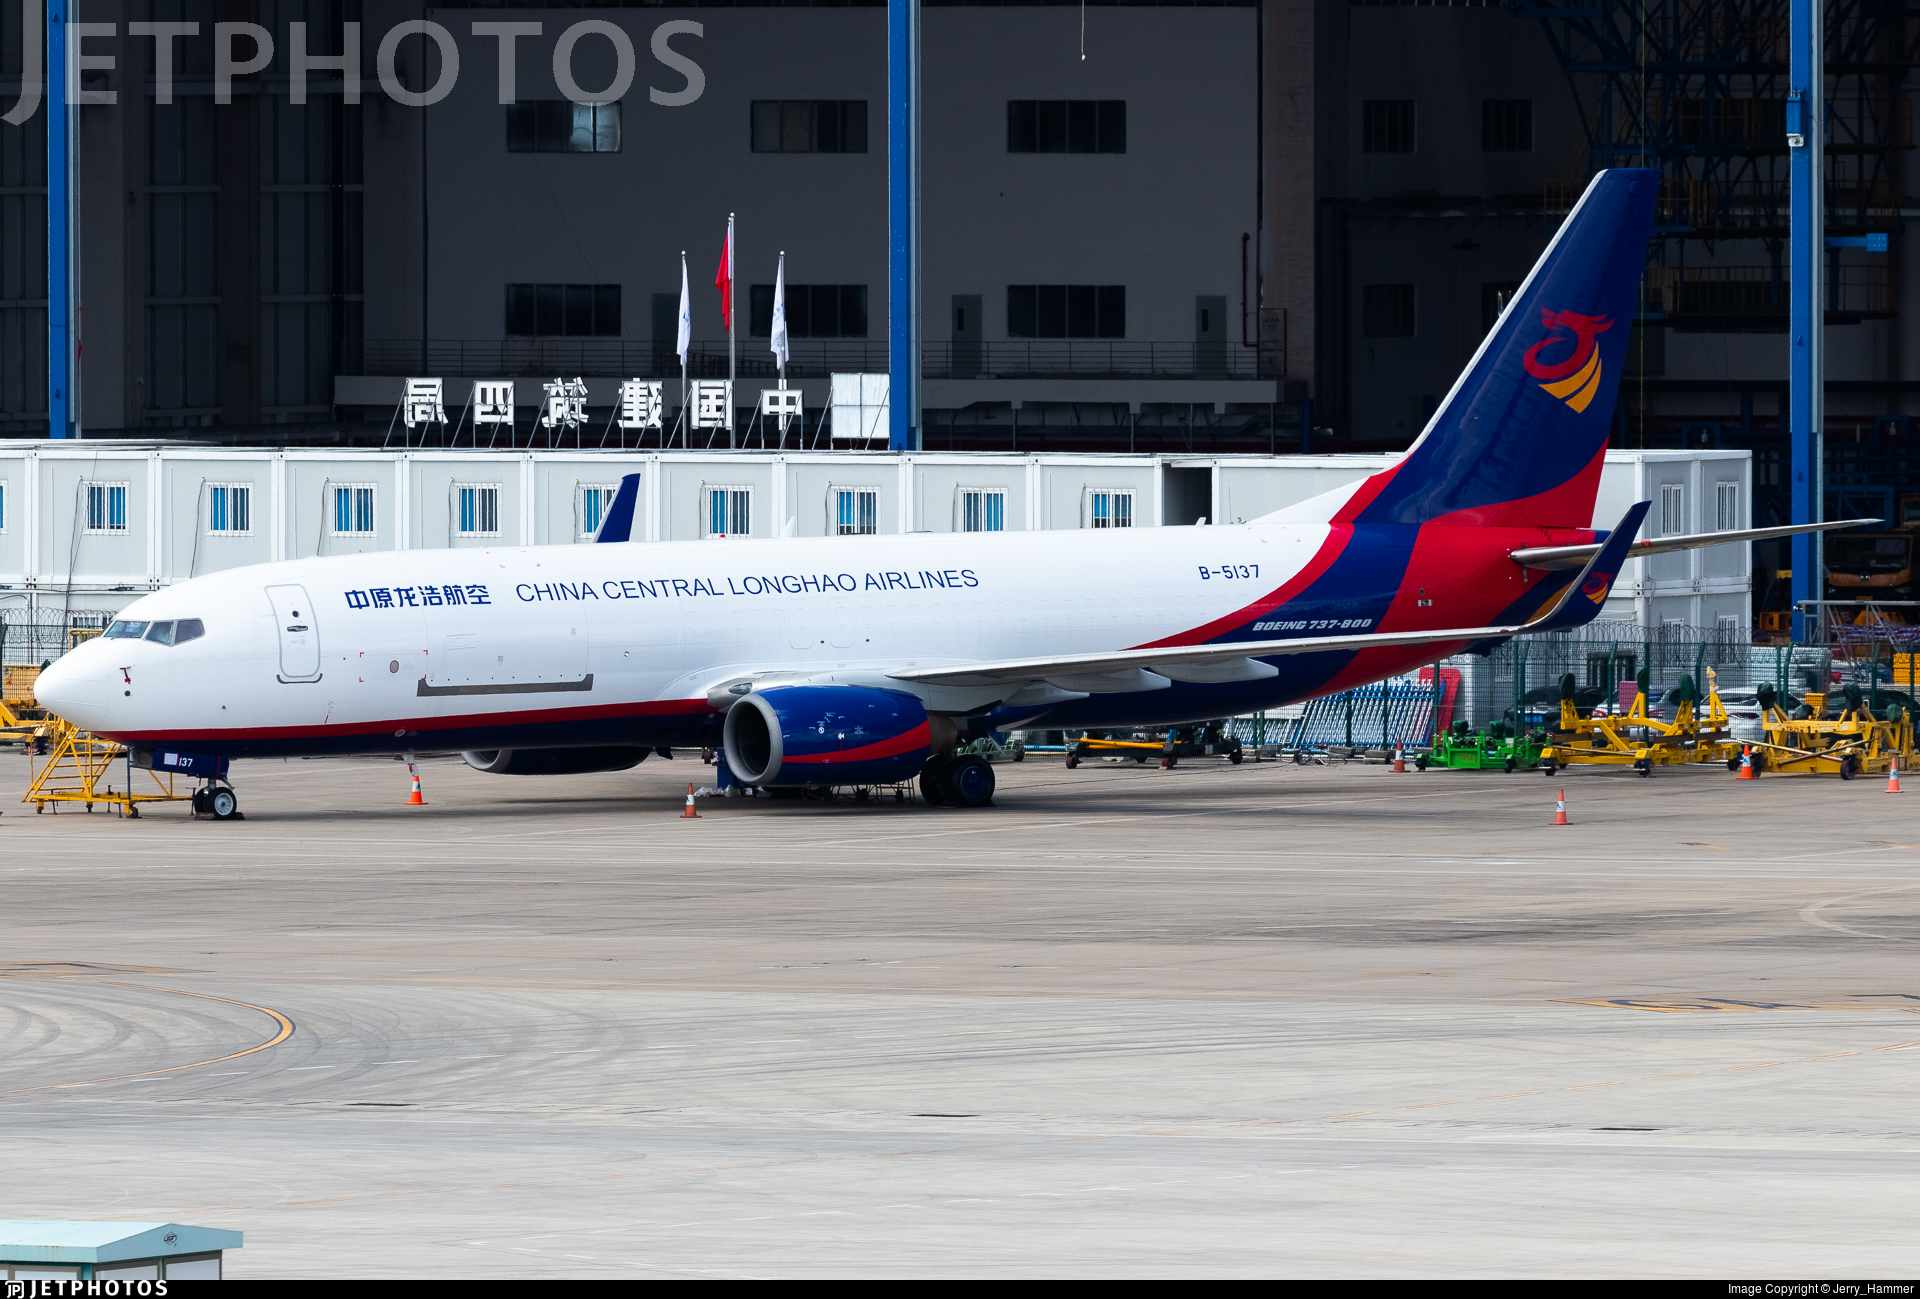 B-5137 - Boeing 737-84P(BCF) - China Central Longhao Airlines